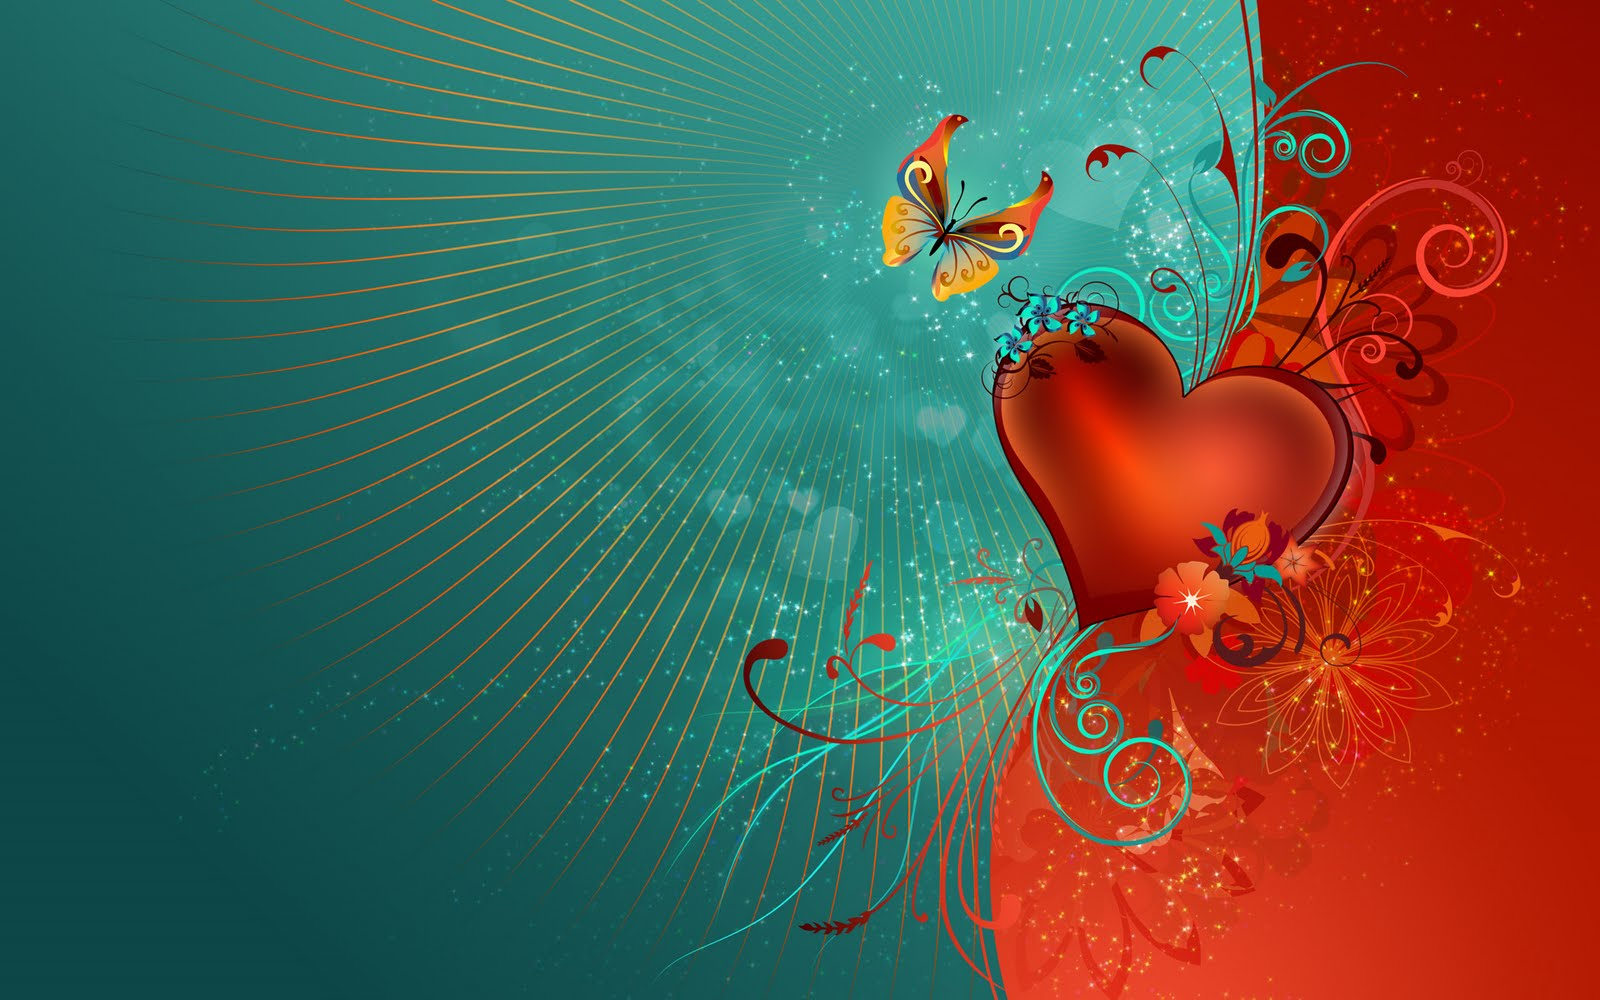 Wallpapers Box: Valentine's Day HD Backgrounds, Wallpapers